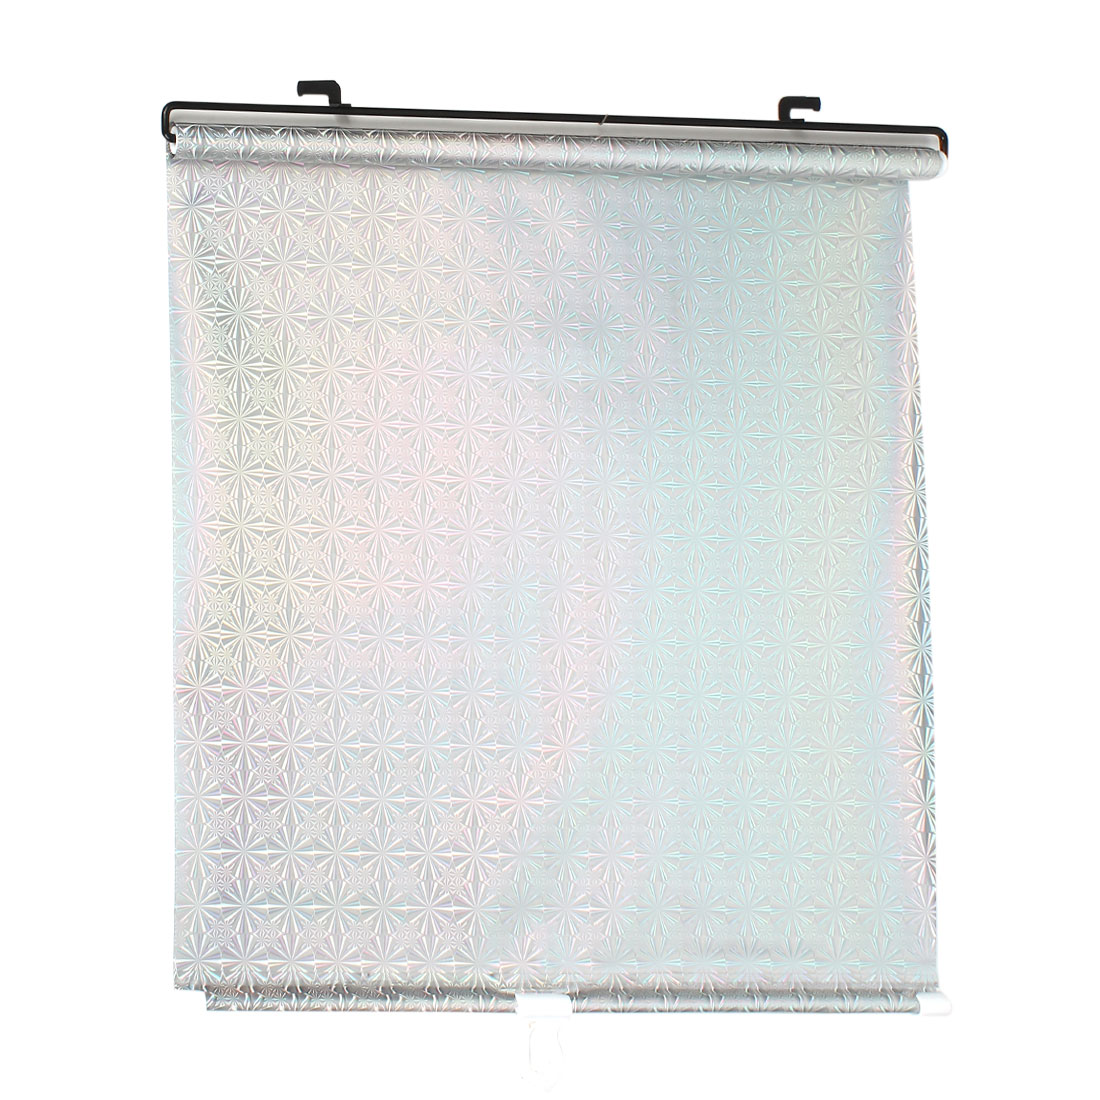 Auto Retractable Roll Up Side Window Sun Shade 125cm x 45cm Silver Tone